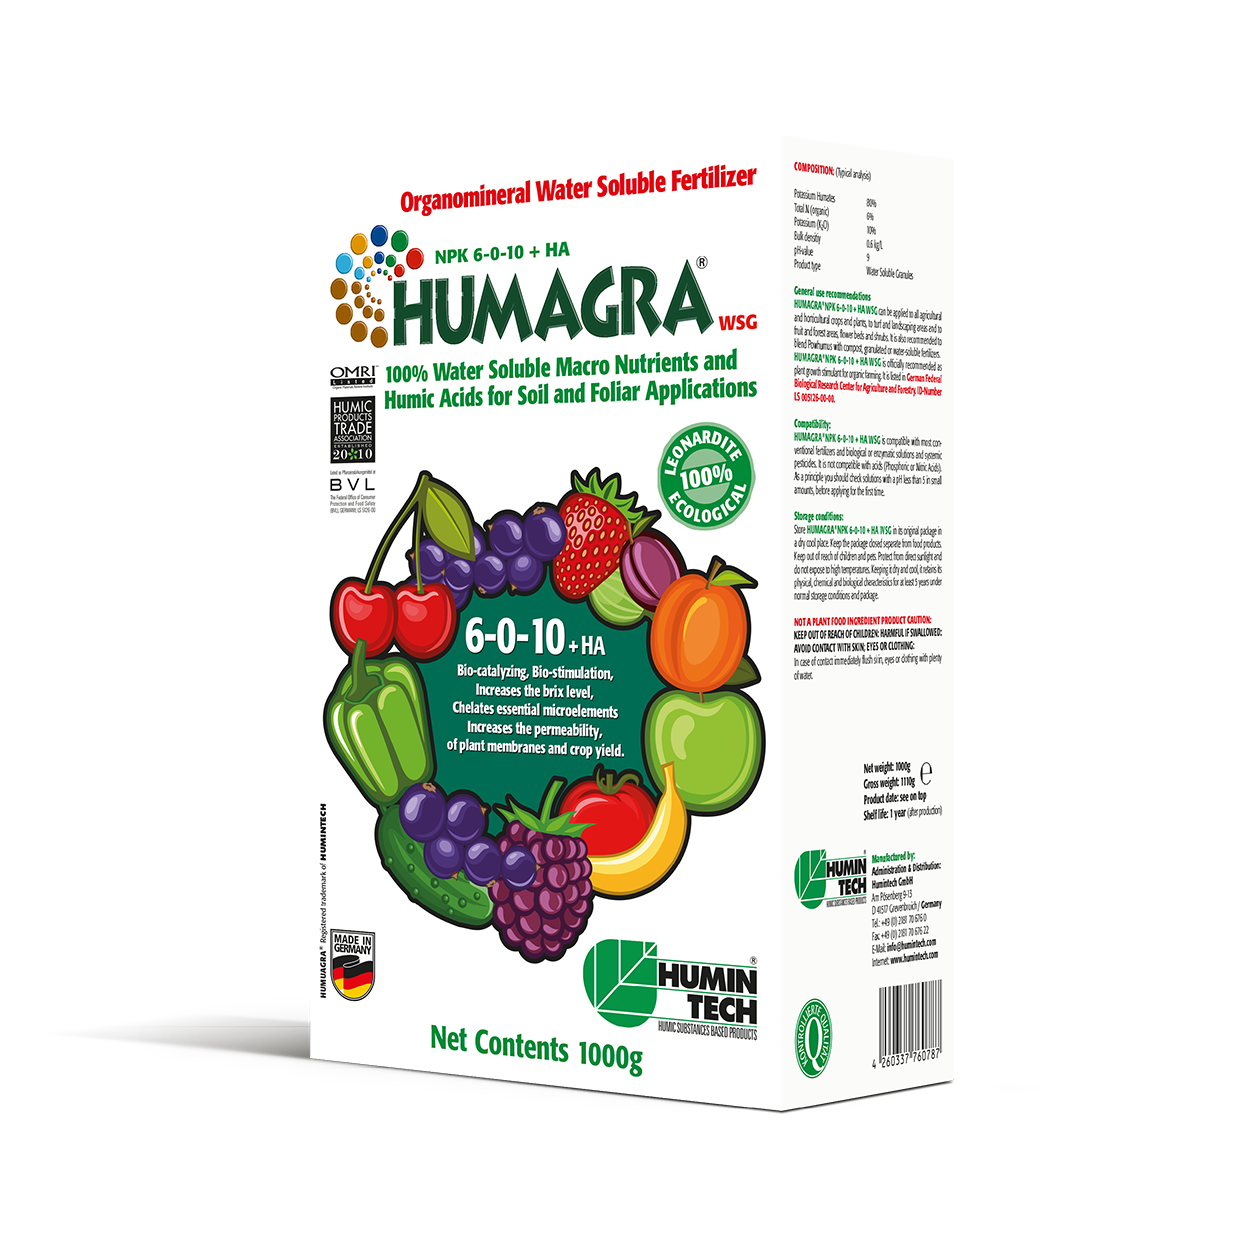 HUMAGRA NPK 6-0-10 + HA WSG Organomineral Water Soluble Fertilizer box